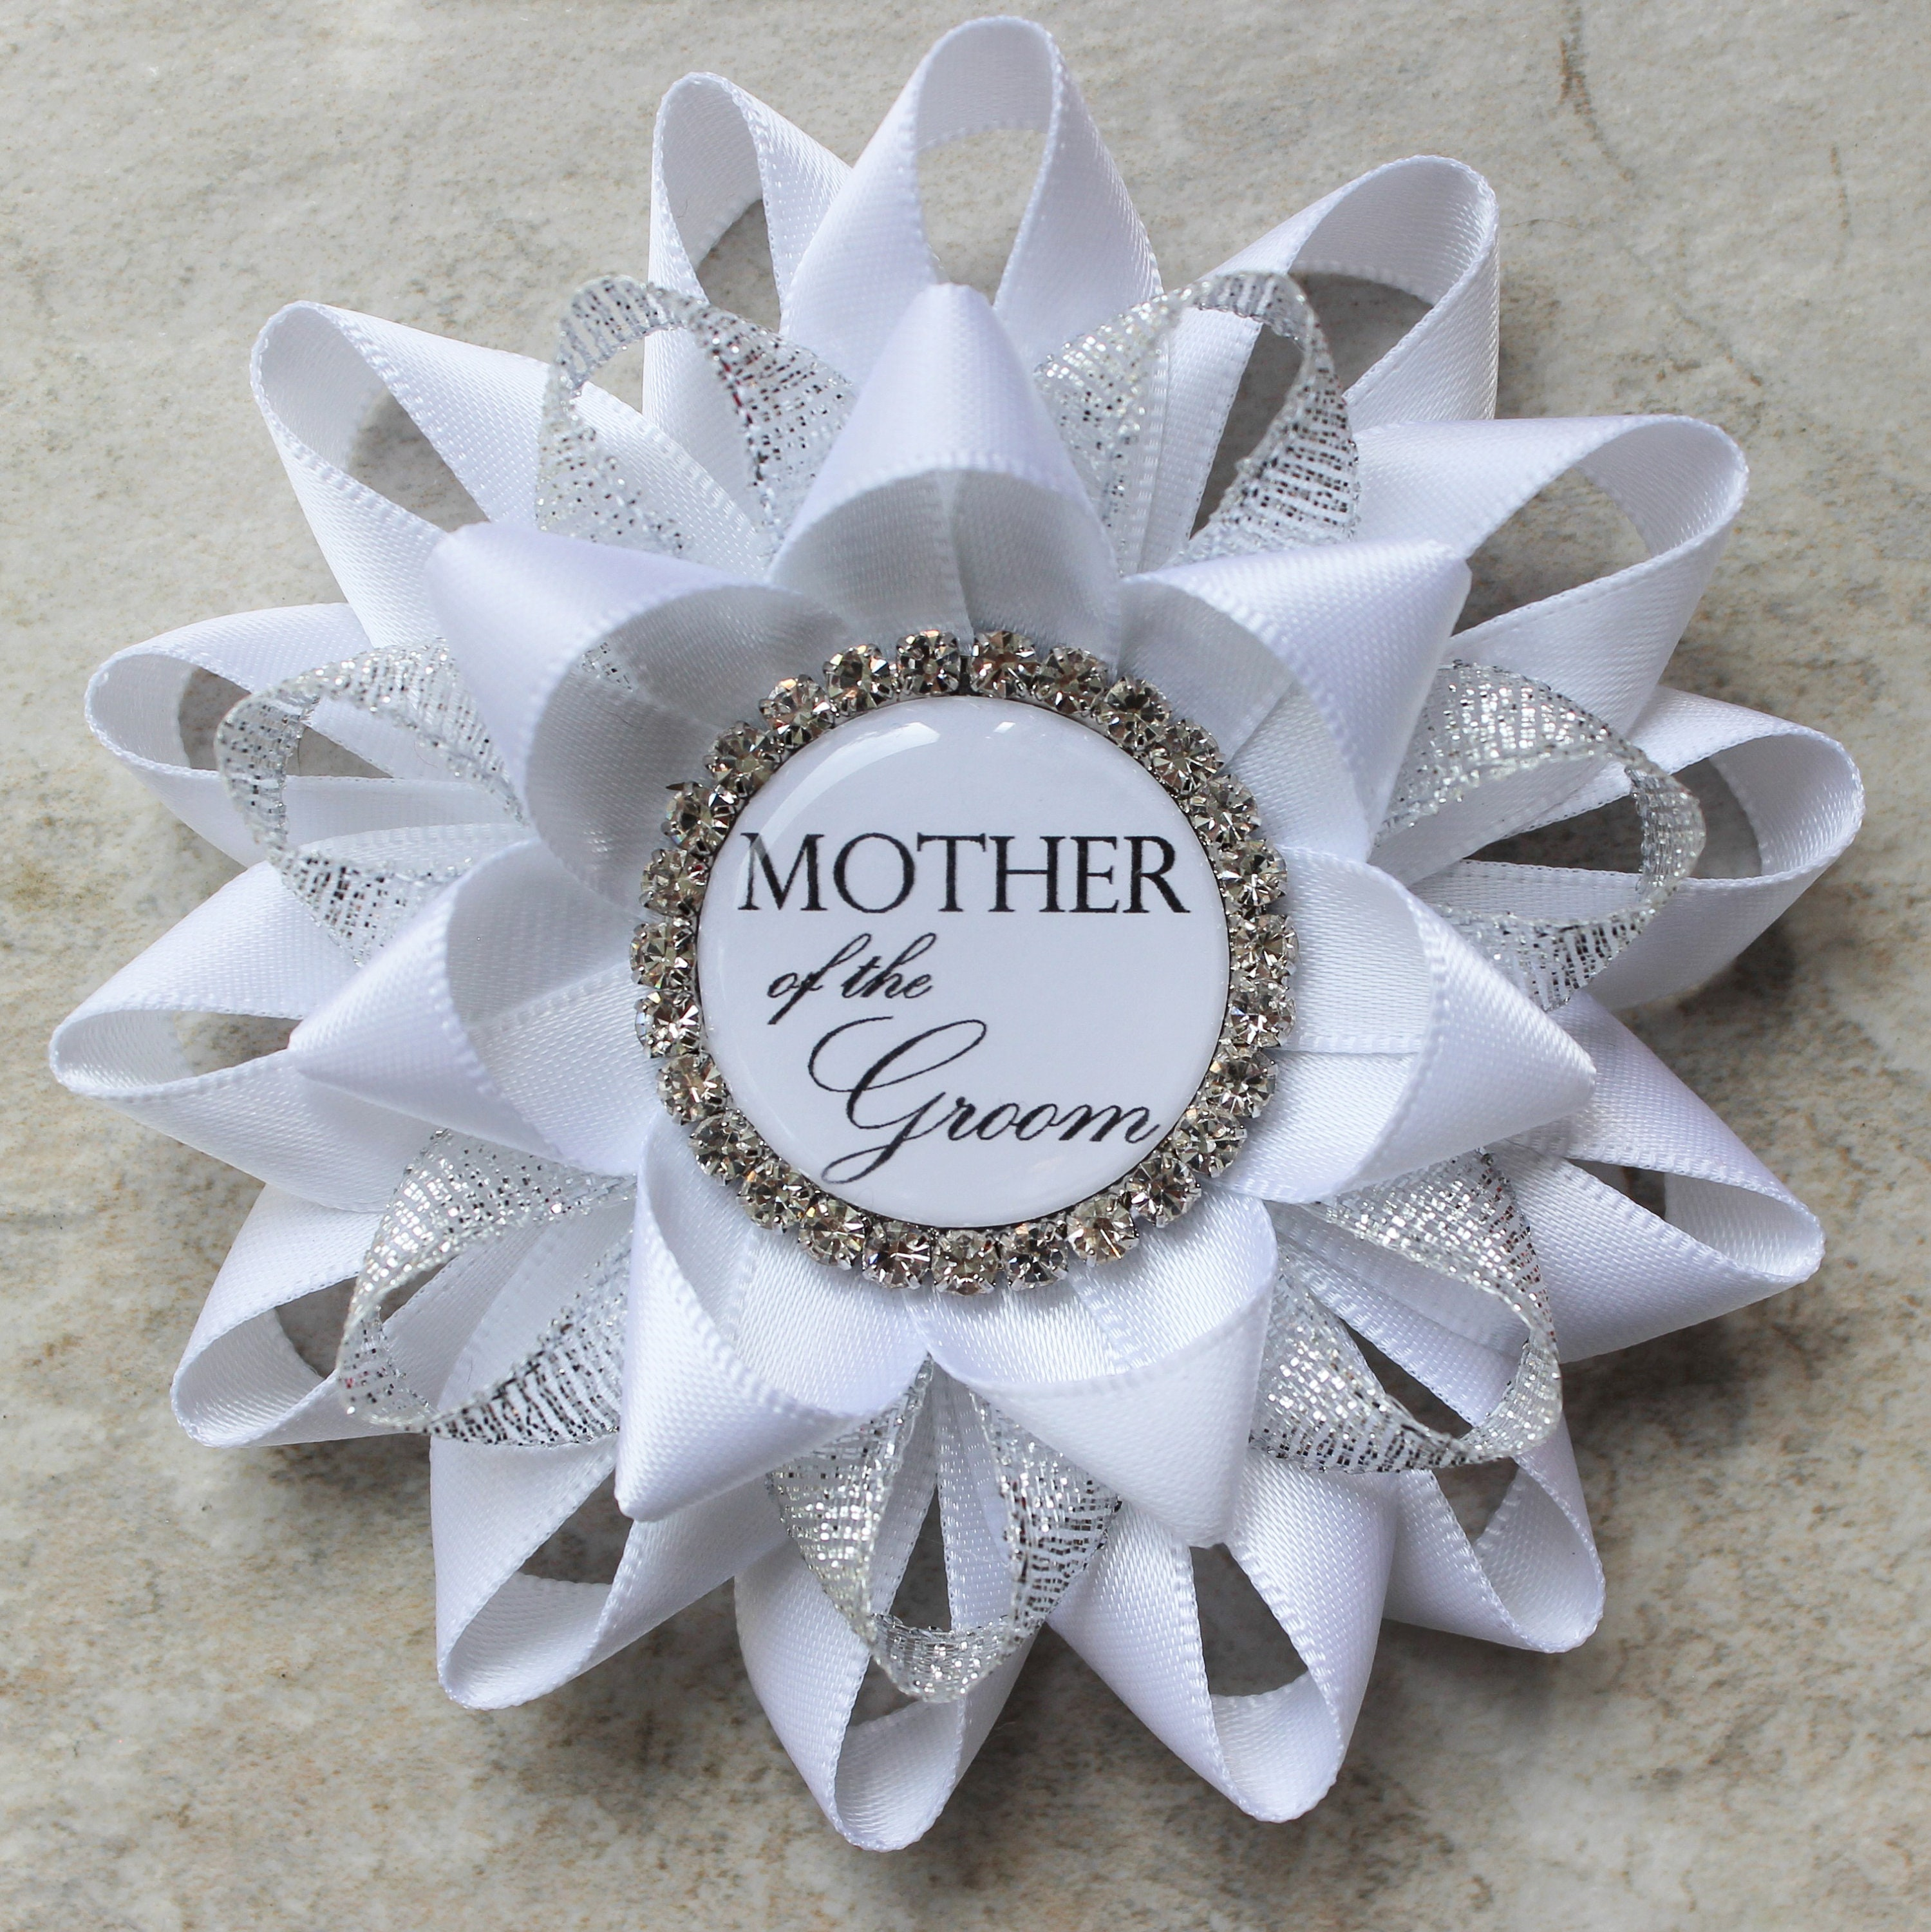 bridal shower pins mother of the groom gift ideas engagement party or bridal shower gifts for bridal party